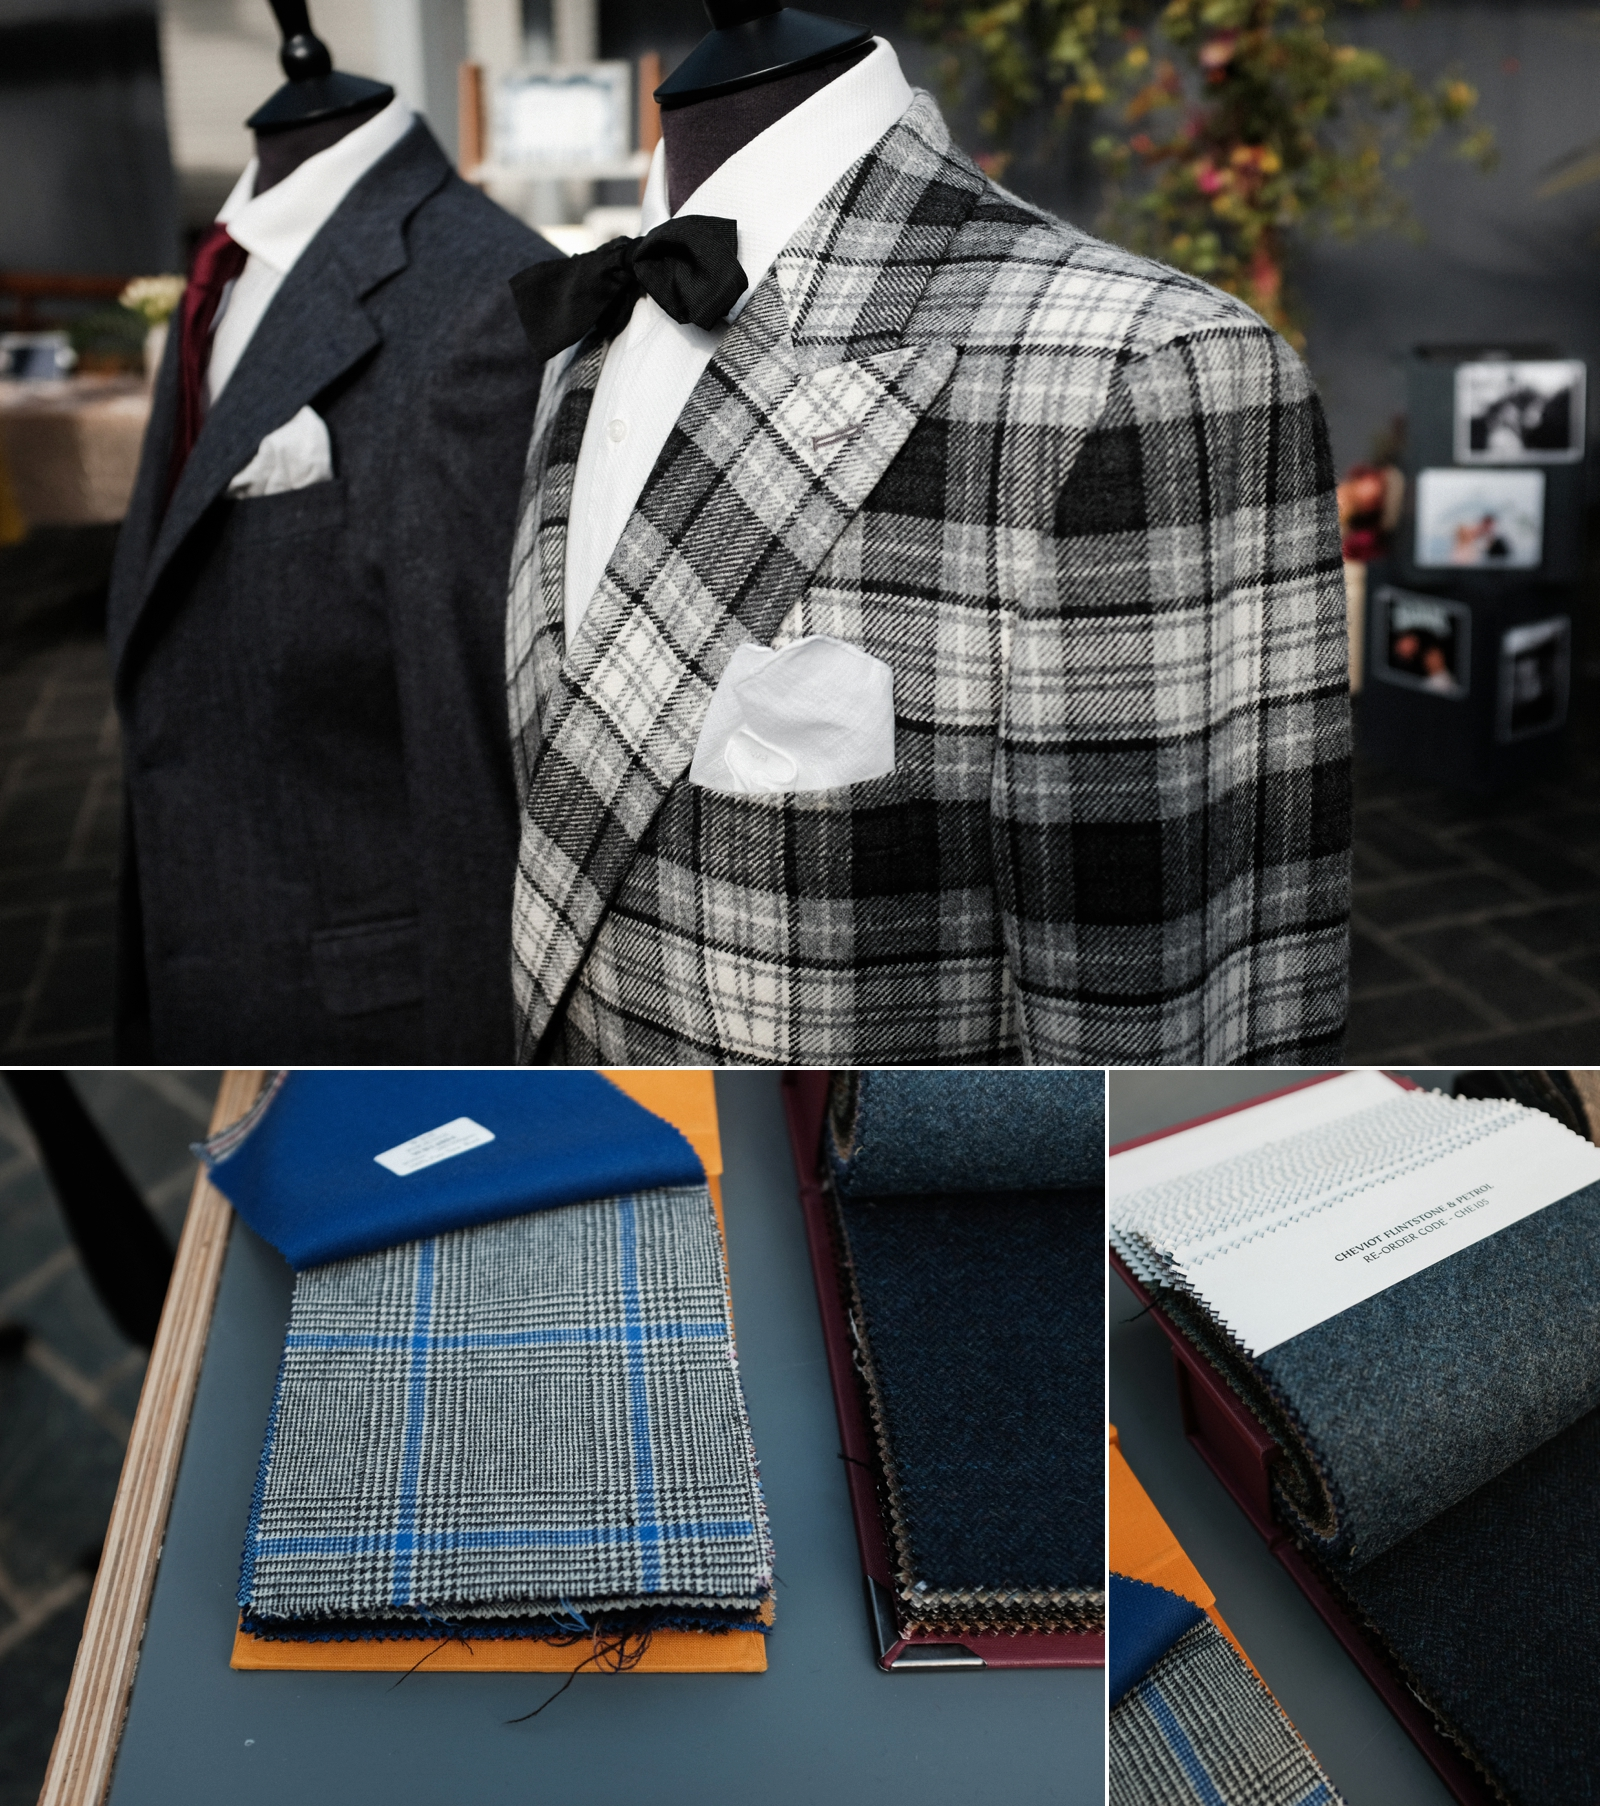 Image by  Walnut Wasp  of  Hunter Kingsley 's delicious menswear at our recent Wedding Workshop